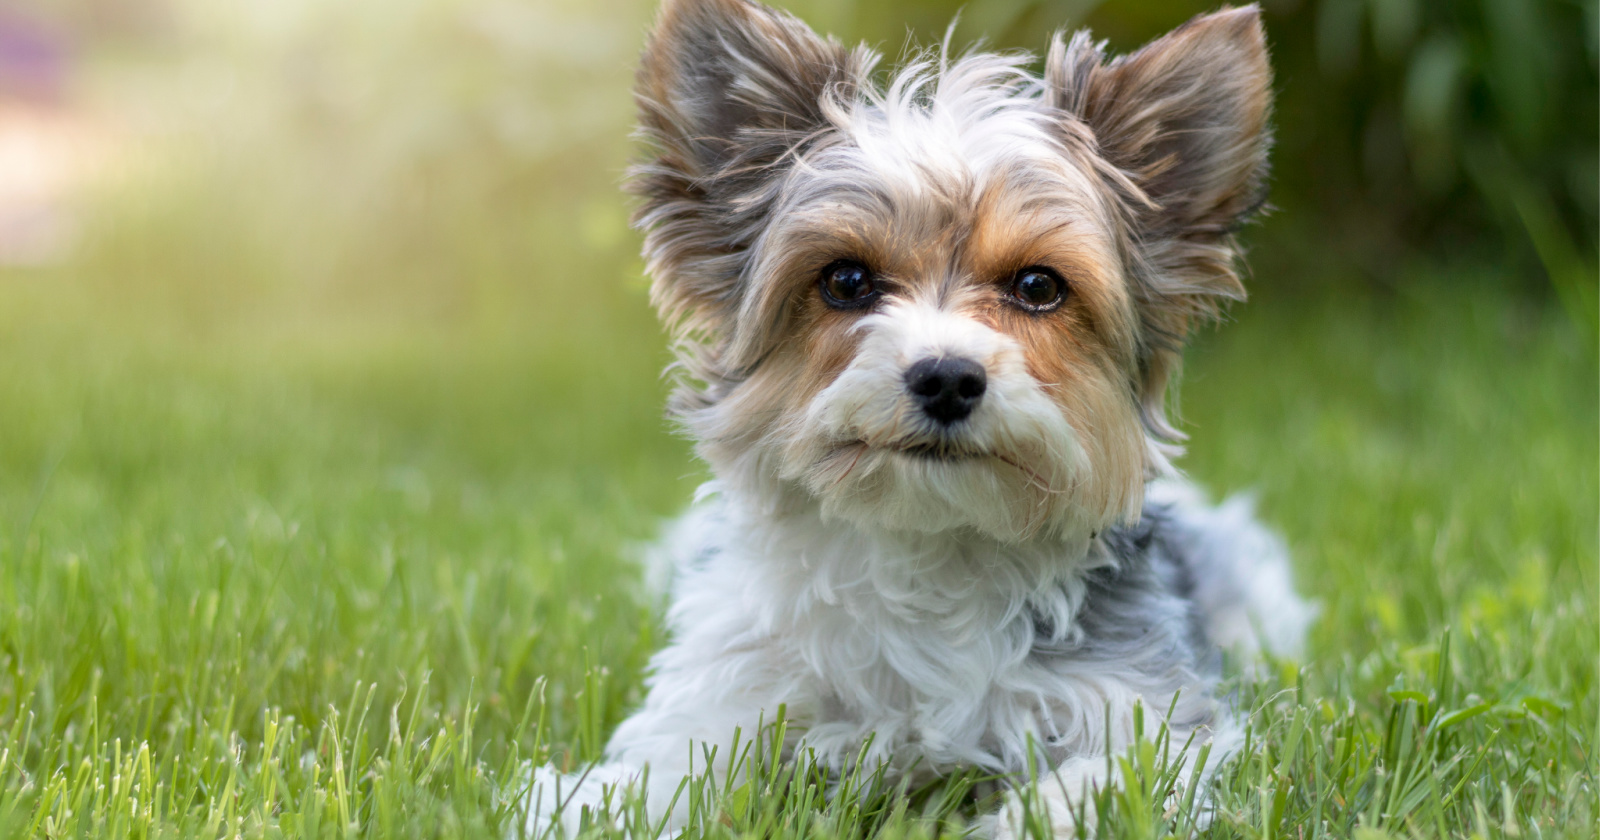 7 Tips On Dealing With Yorkie Potty Training Regression Alpha Trained Dog